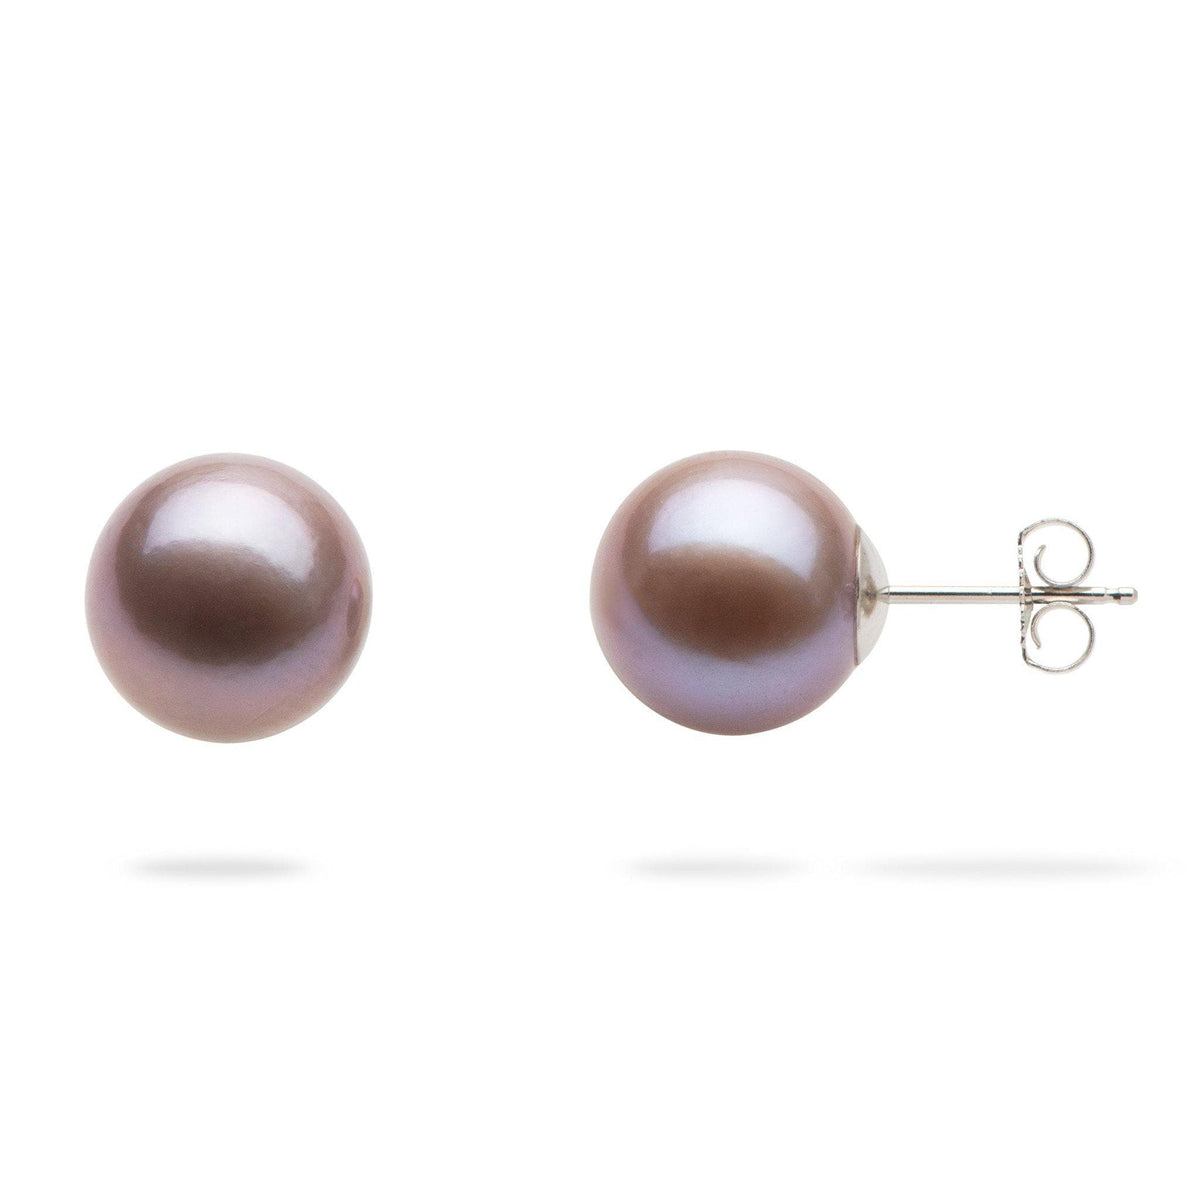 Lilac Freshwater Pearl Earrings in 14K White Gold (10-11mm)